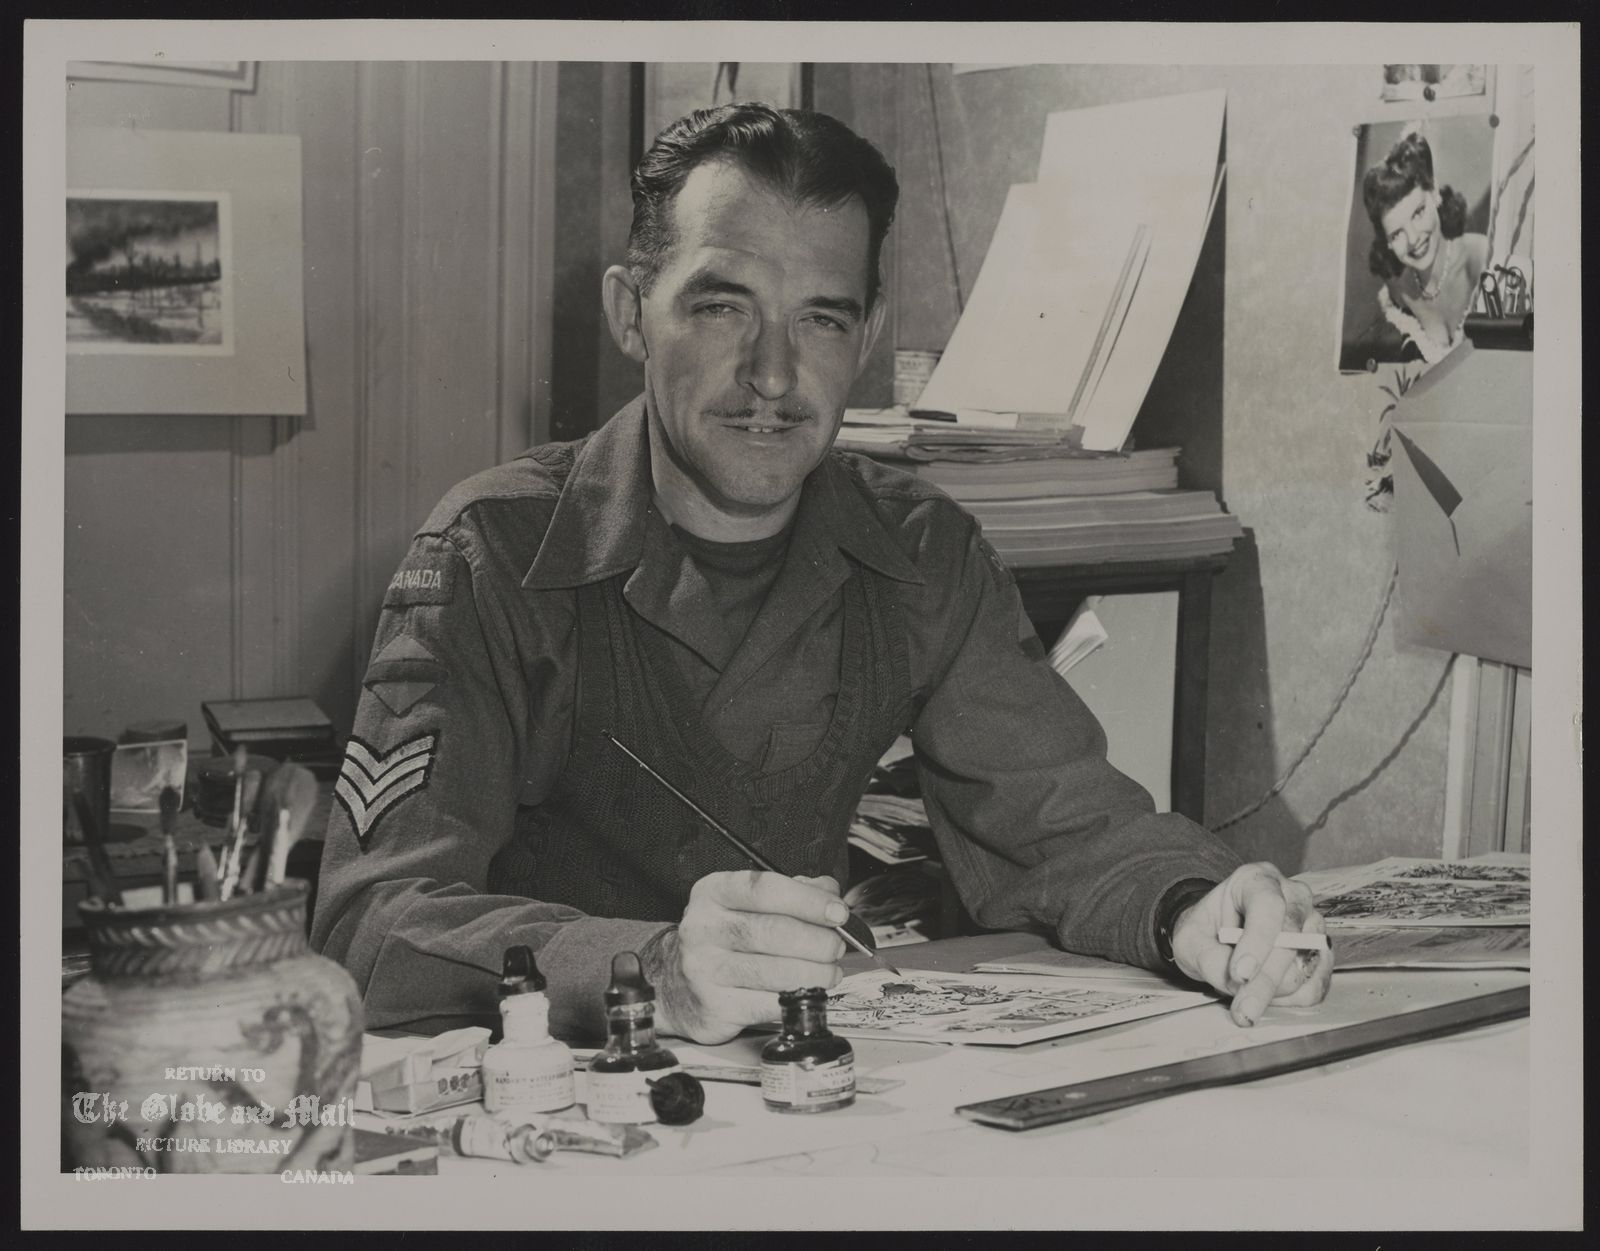 W.G. (Bing) COUGHLIN FAMOUS CANADIAN ARMY CARTOONIST DRAWS ANOTHER GEM Sgt. W.G.